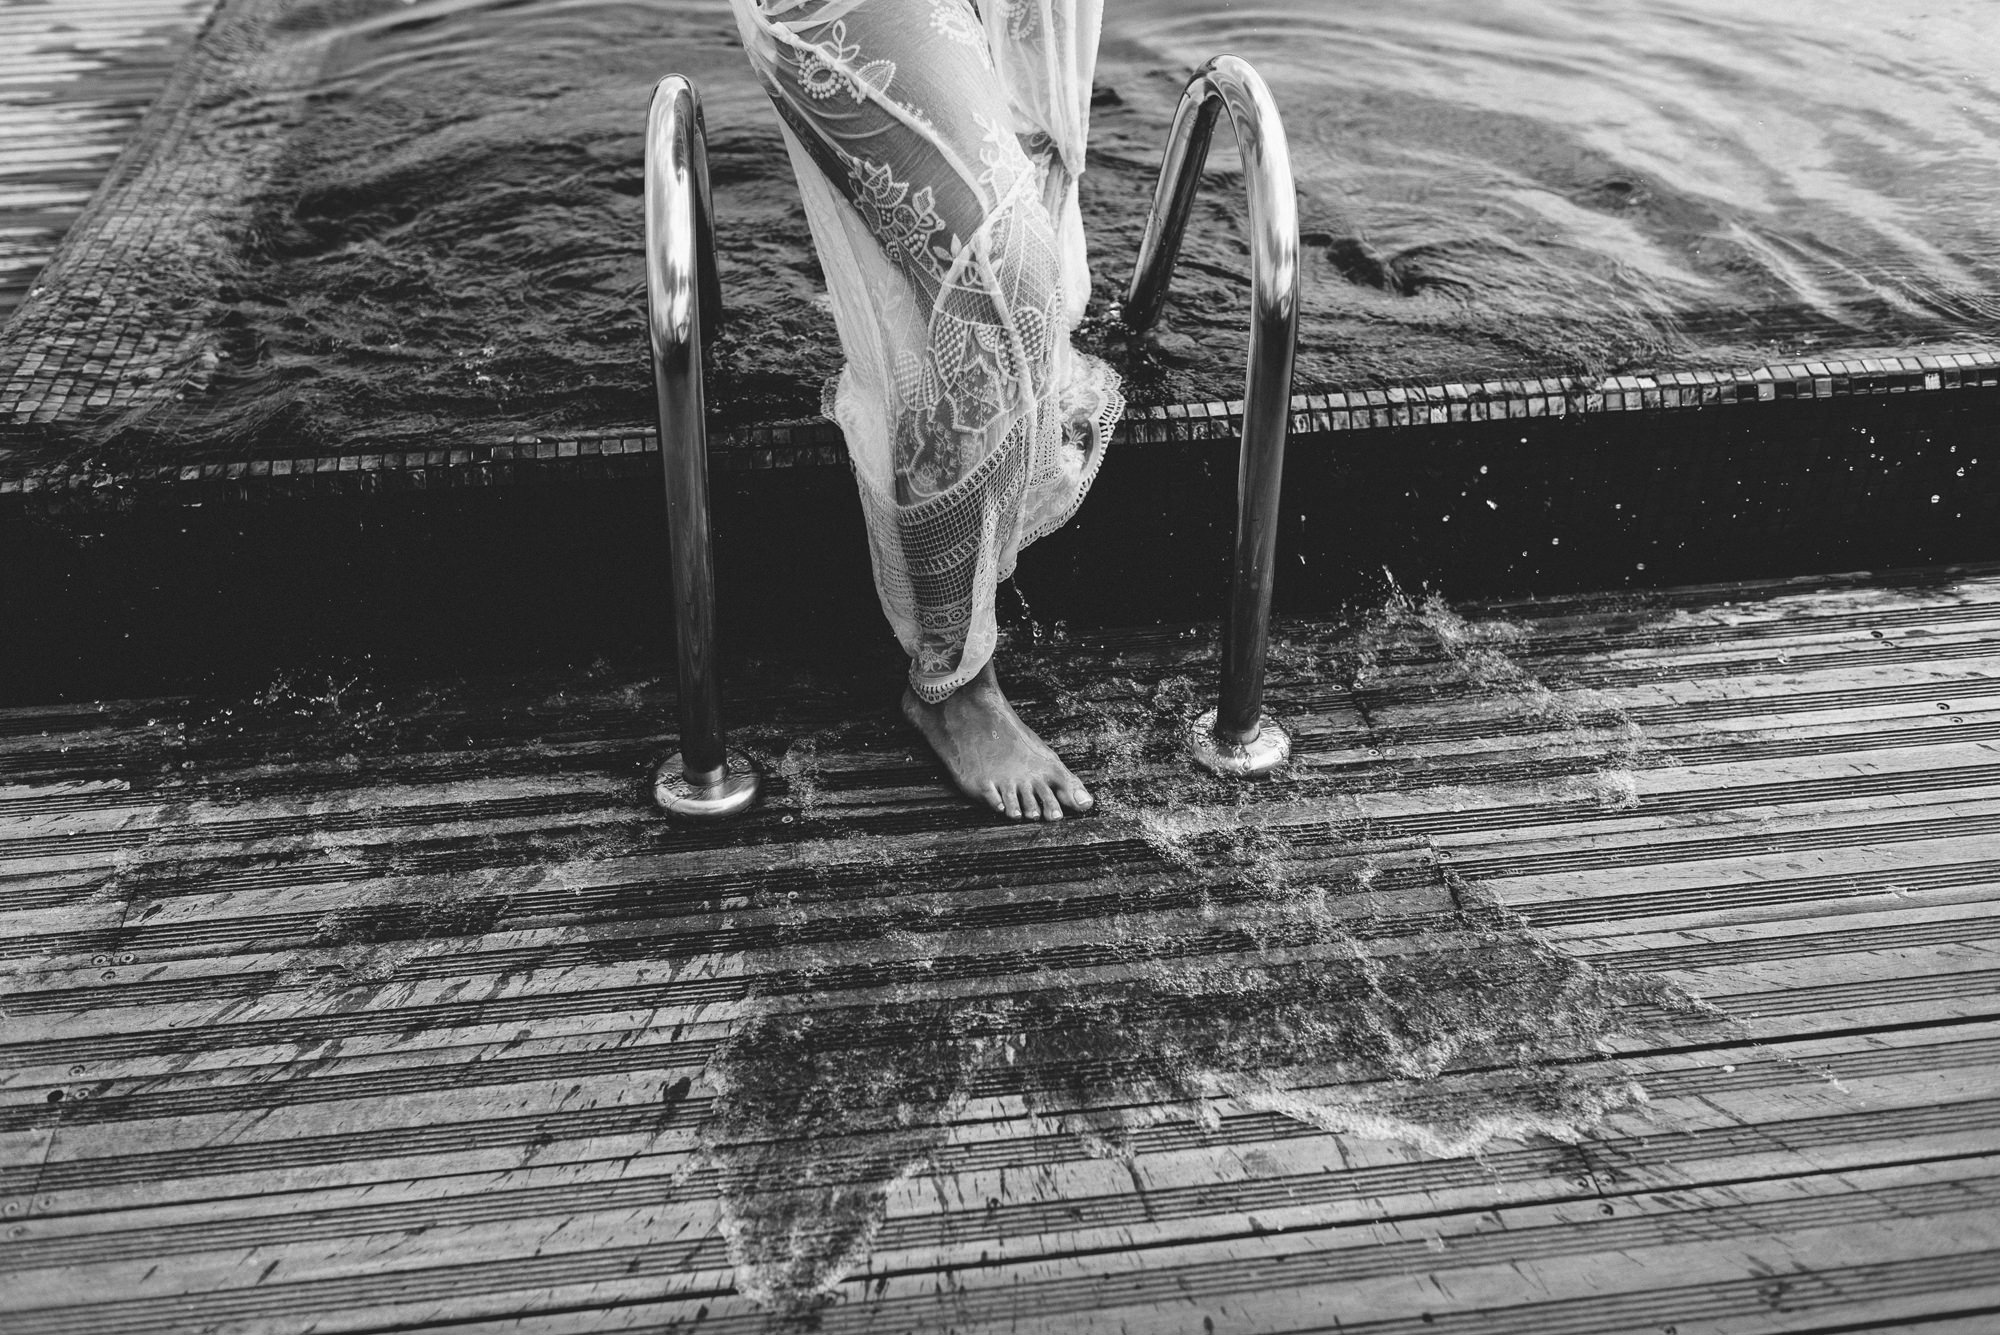 Black and white of bride in wet wedding gown stepping out of pool, by Thierry Joubert